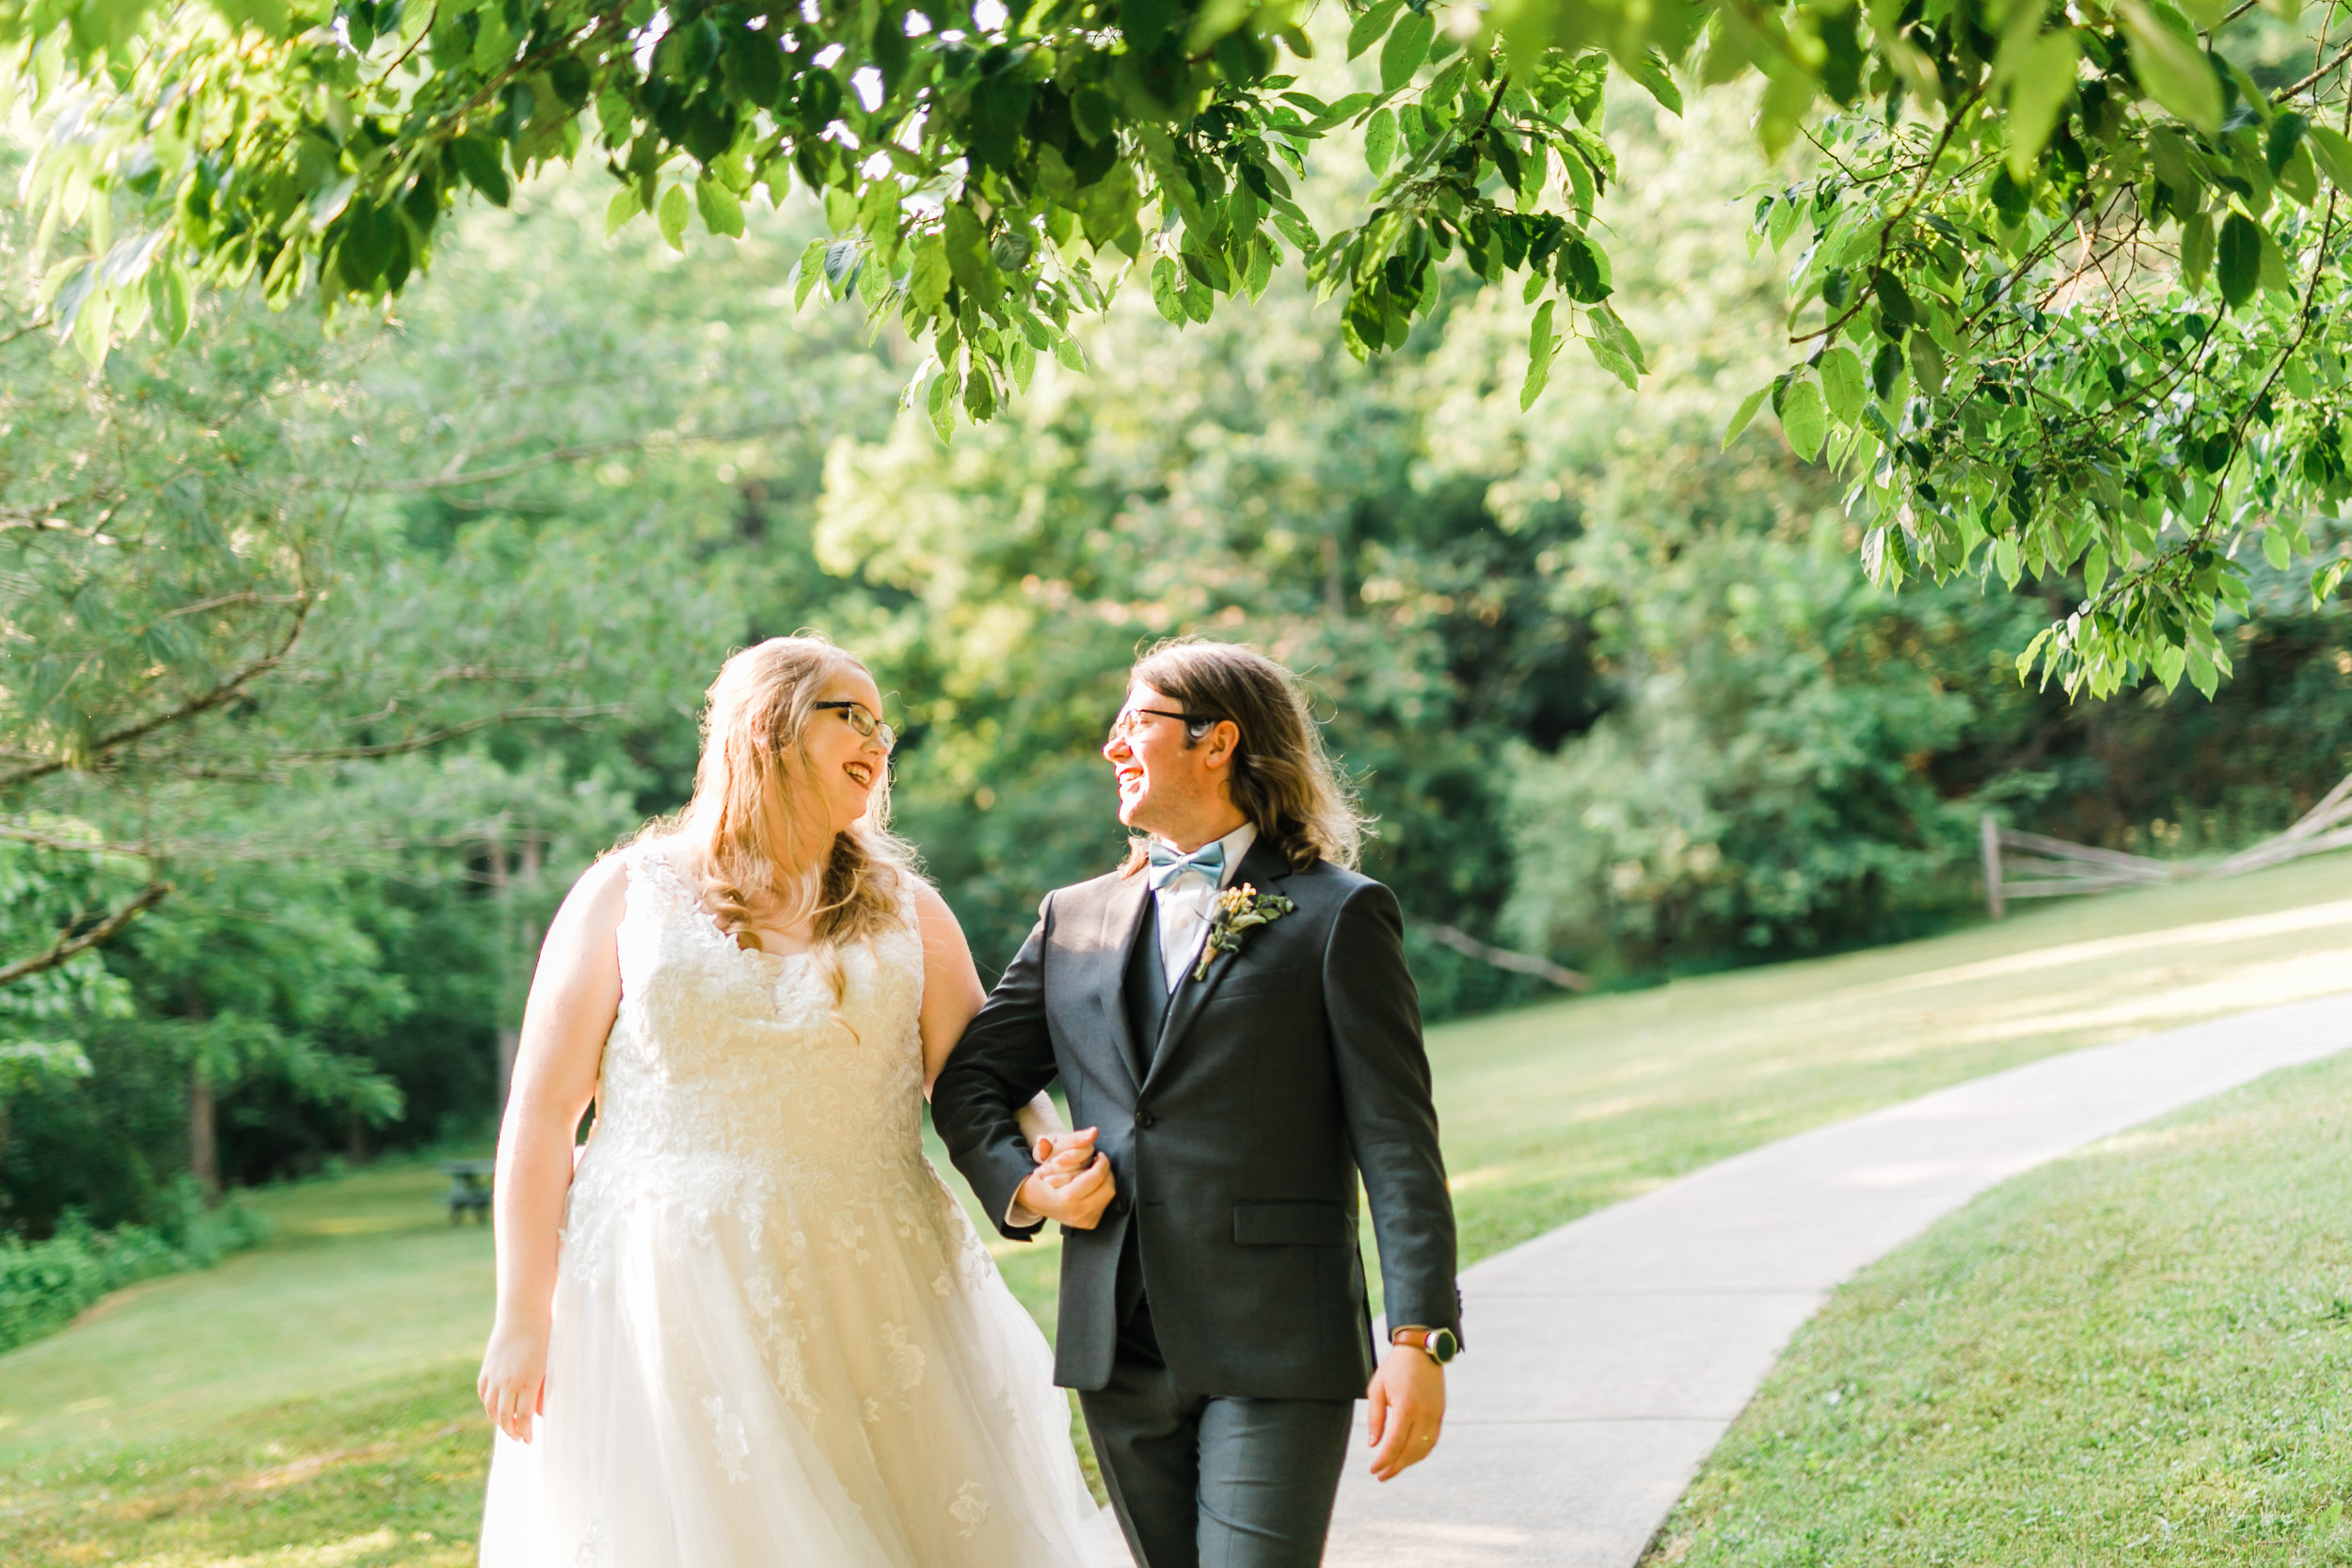 couple smiling wedding cardinals nest venue Tennessee